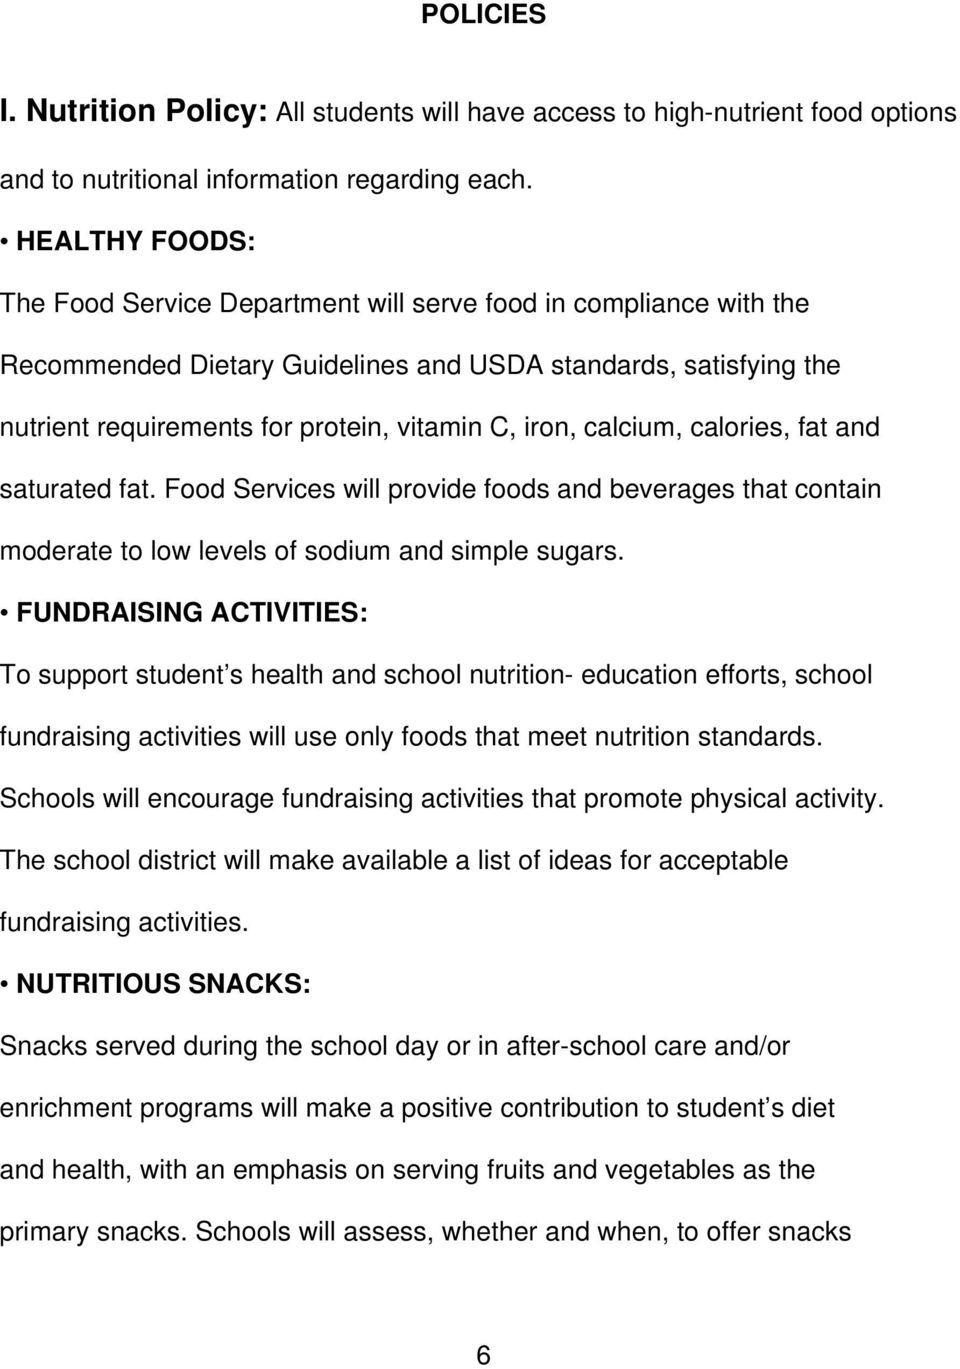 Wellness Policy Revised October 21 Pdf